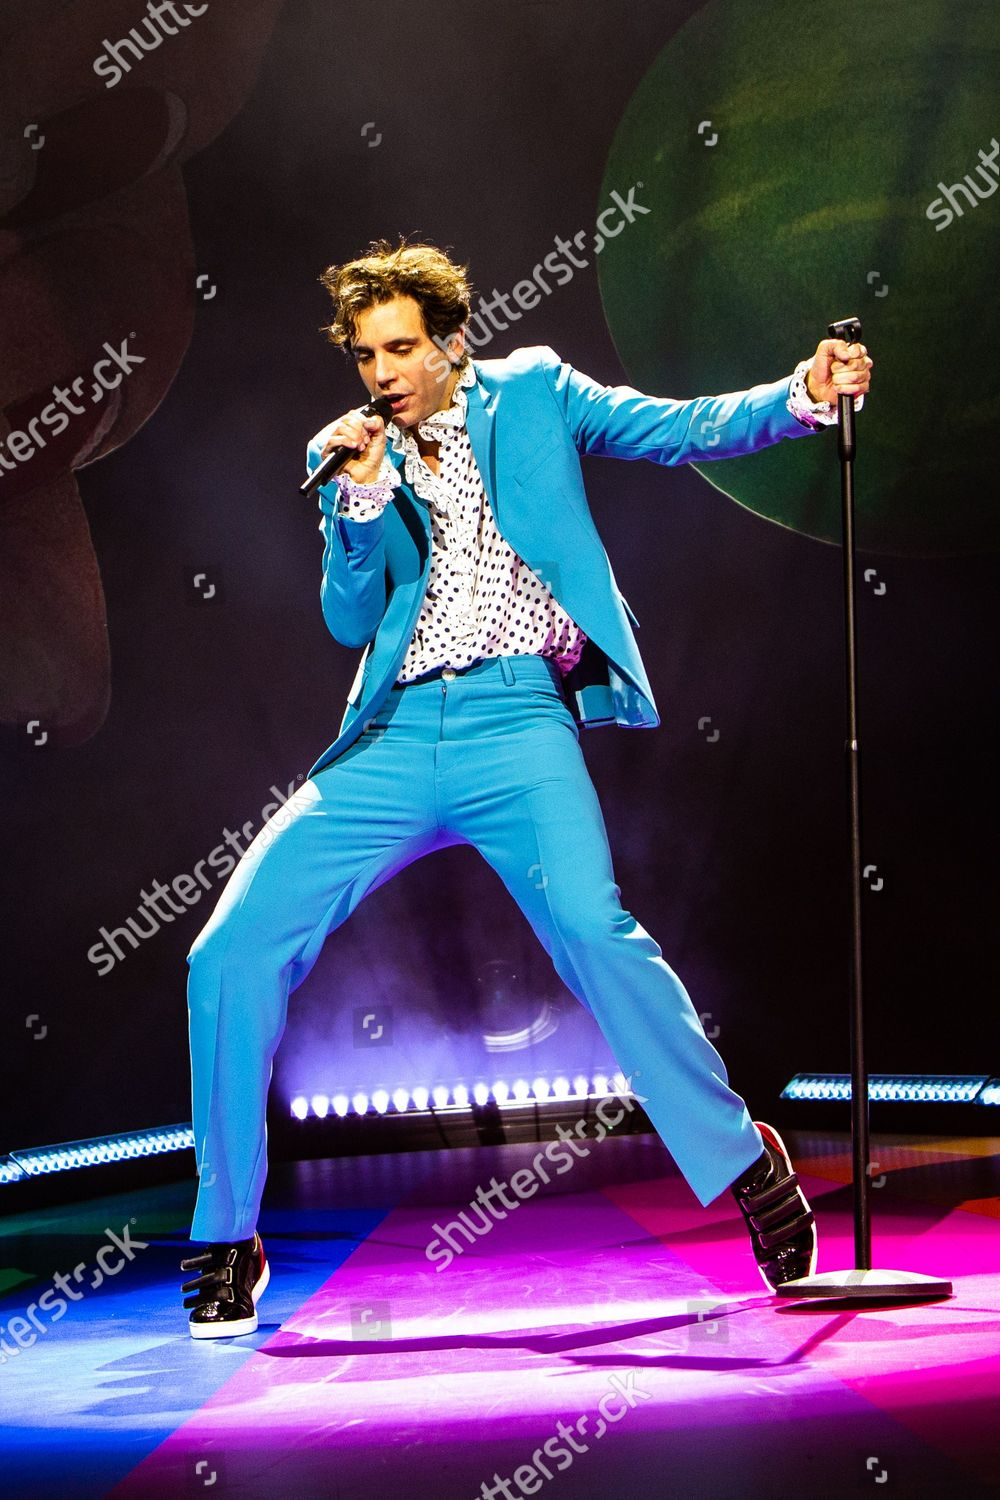 mika-in-concert-at-the-mediolanum-forum-